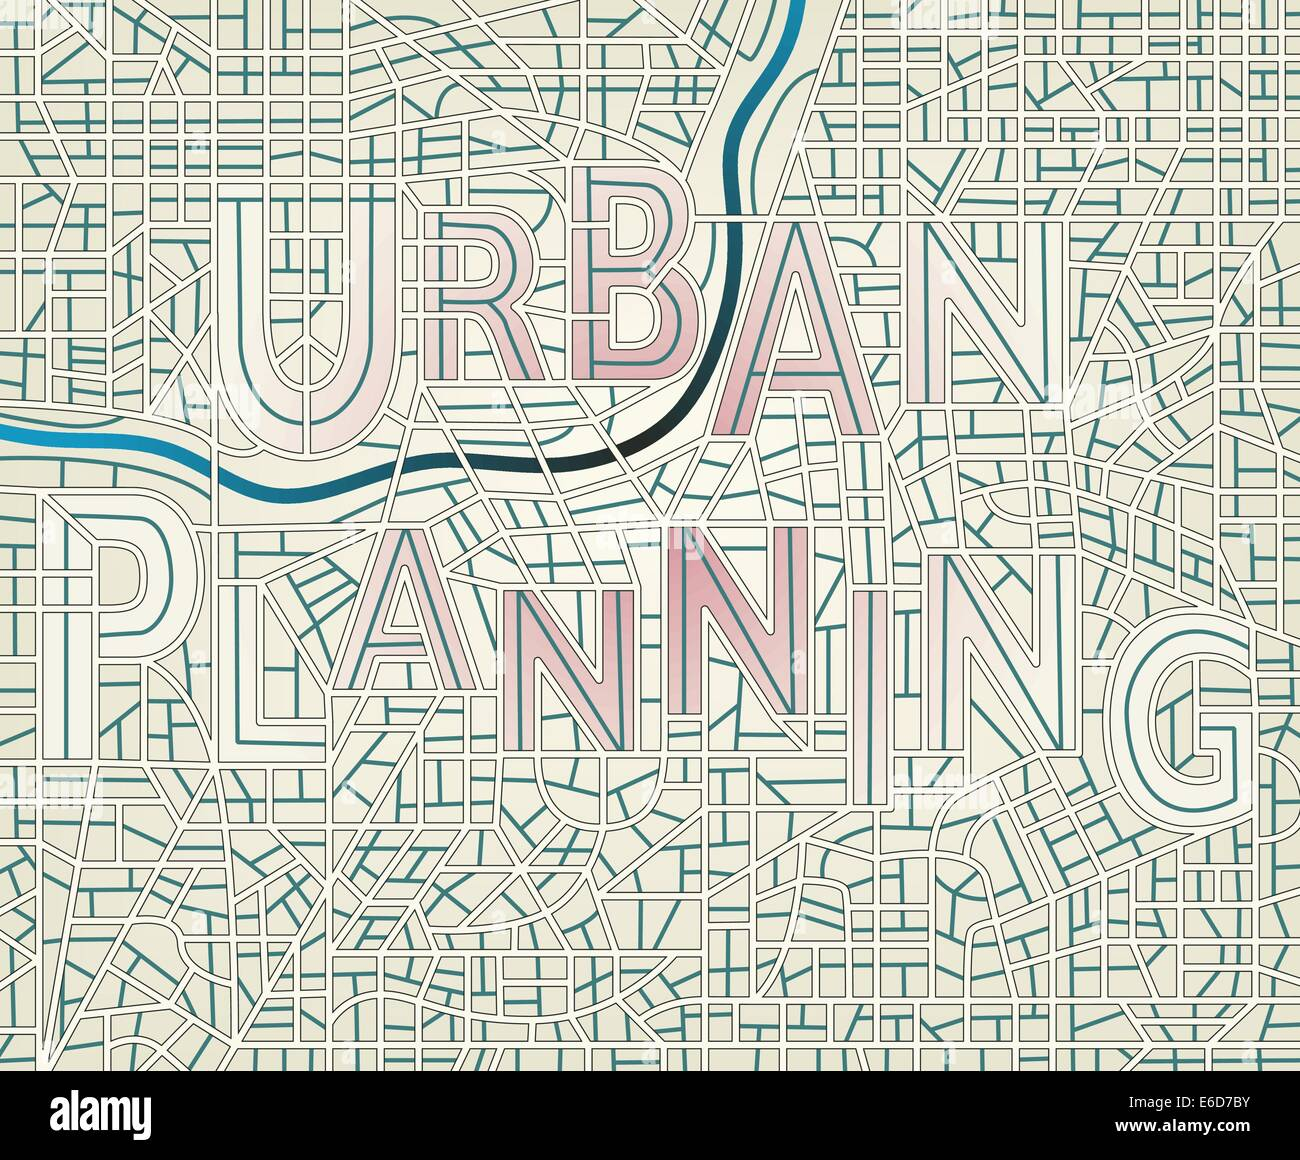 Editable vector map of a generic city with the streets spelling the words 'Urban Planning' - Stock Image